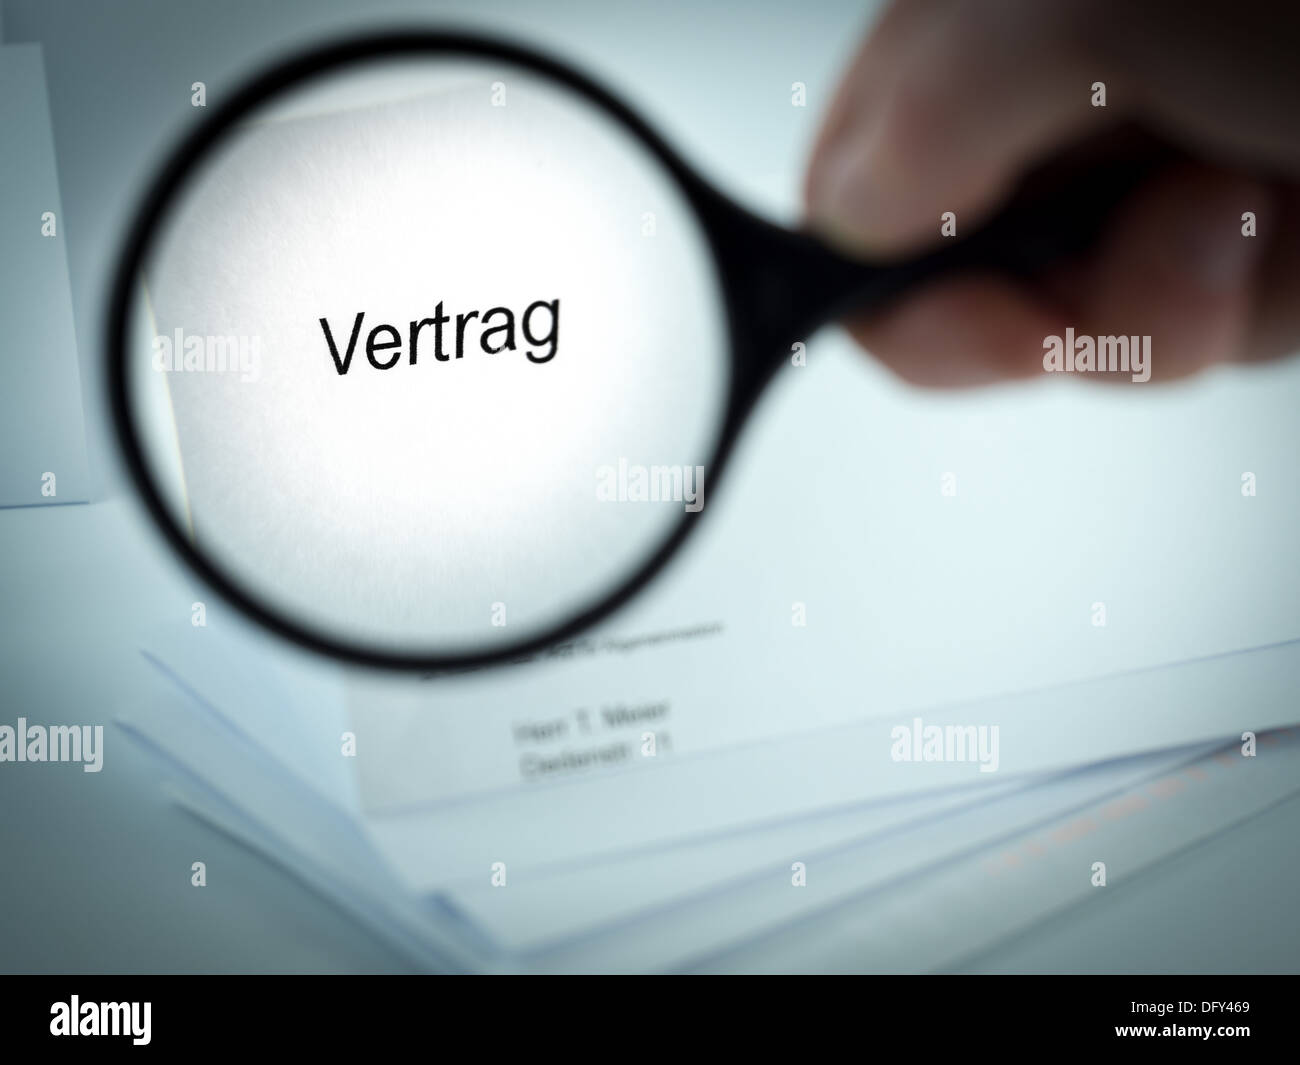 Cover Letter With The Word Vertrag In The Letterhead Stock